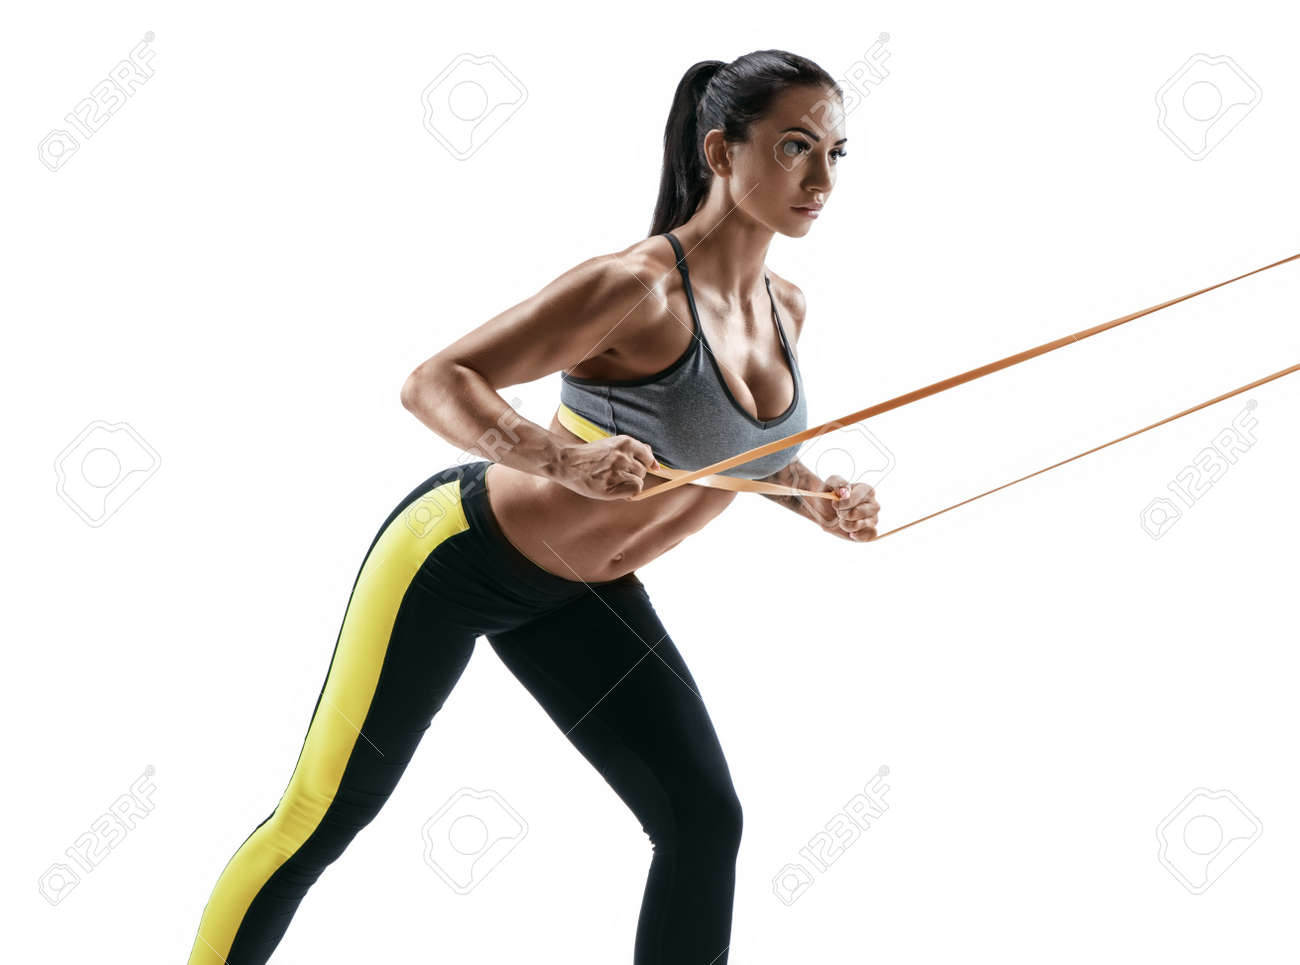 Beautiful athletic woman during workout with suspension straps. Young woman performs fitness exercises on white background. Strength and motivation - 76975242